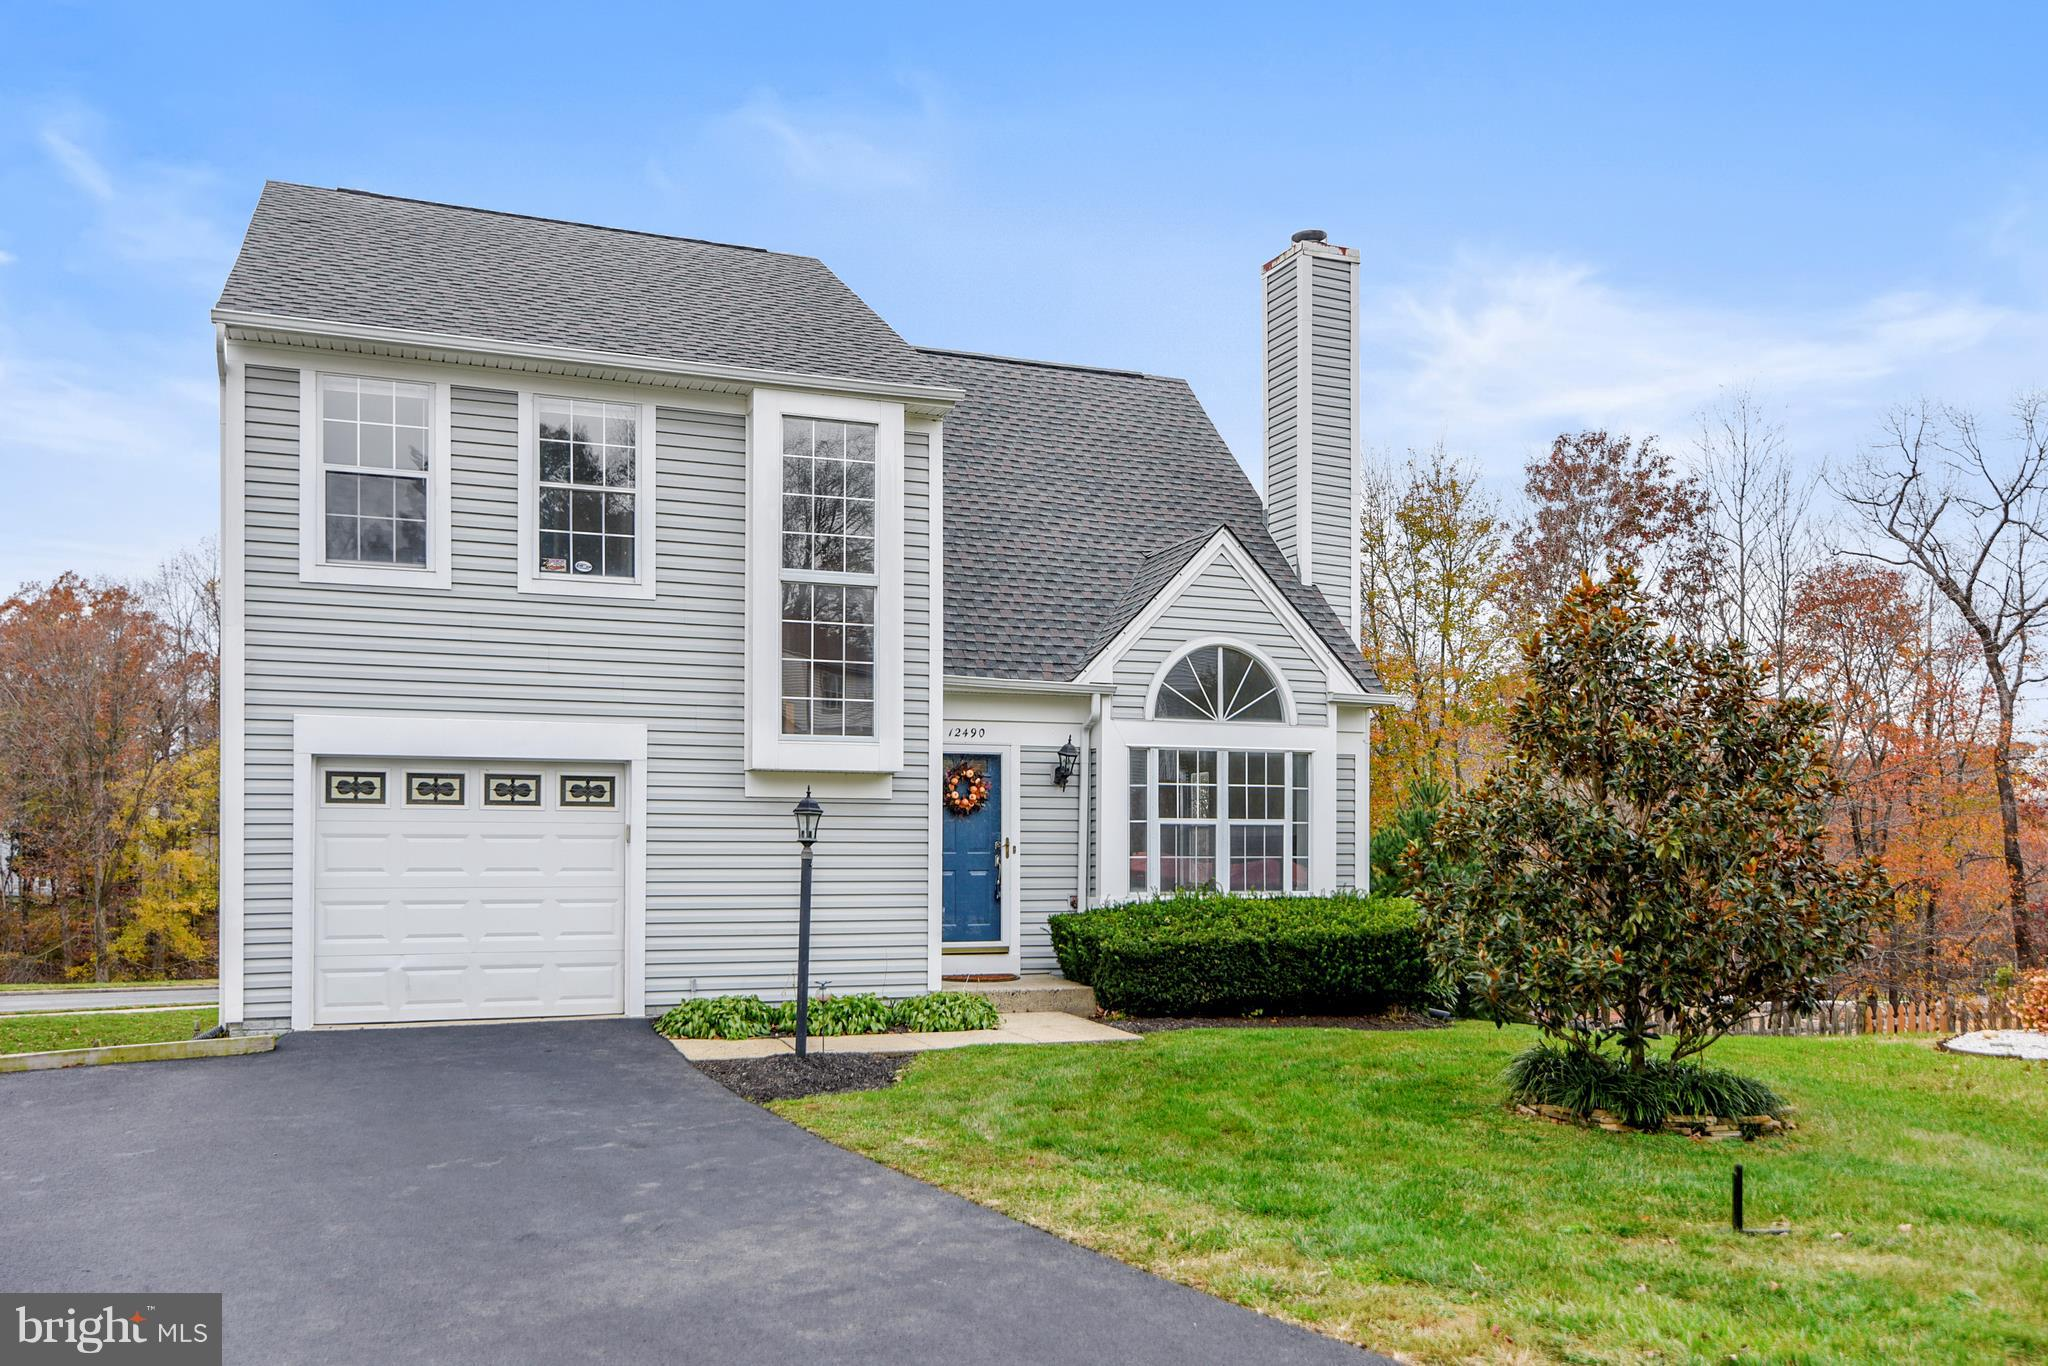 UPDATE, OPEN , AIRY COLONIAL WITH CONTEMPORARY FLAIR SITUATED IN THE HEART OF LAKE RIDGE* 3 FINISHED LEVELS WITH UPGRADES/UPDATES THRU-OUT*UPDATES:SIDING, KIT. W/GRANITE COUNTERS, STAINLESS APPL., W/D, CARPET, ROOF, PLUMBING, FENCED REAR YD, STORAGE SHED, & MORE*LIVING ROOM  FEATURES  VAULTED CEIL. & FIREPLACE, SEPERATE  DINING ROOM, EAT-N KITCHEN  WITH WALK-OUT TO DECK*UPPER LEVEL1 FEATURES MASTER BEDROOM WITH PRIVATE BATH +2 ADD'L BEDROOMs & BATH*LOWER LEVEL FEATURE RECROOM, DEN & 3RD BATH WITH WALK-OUT TO PATIO AND FENCED YARD*